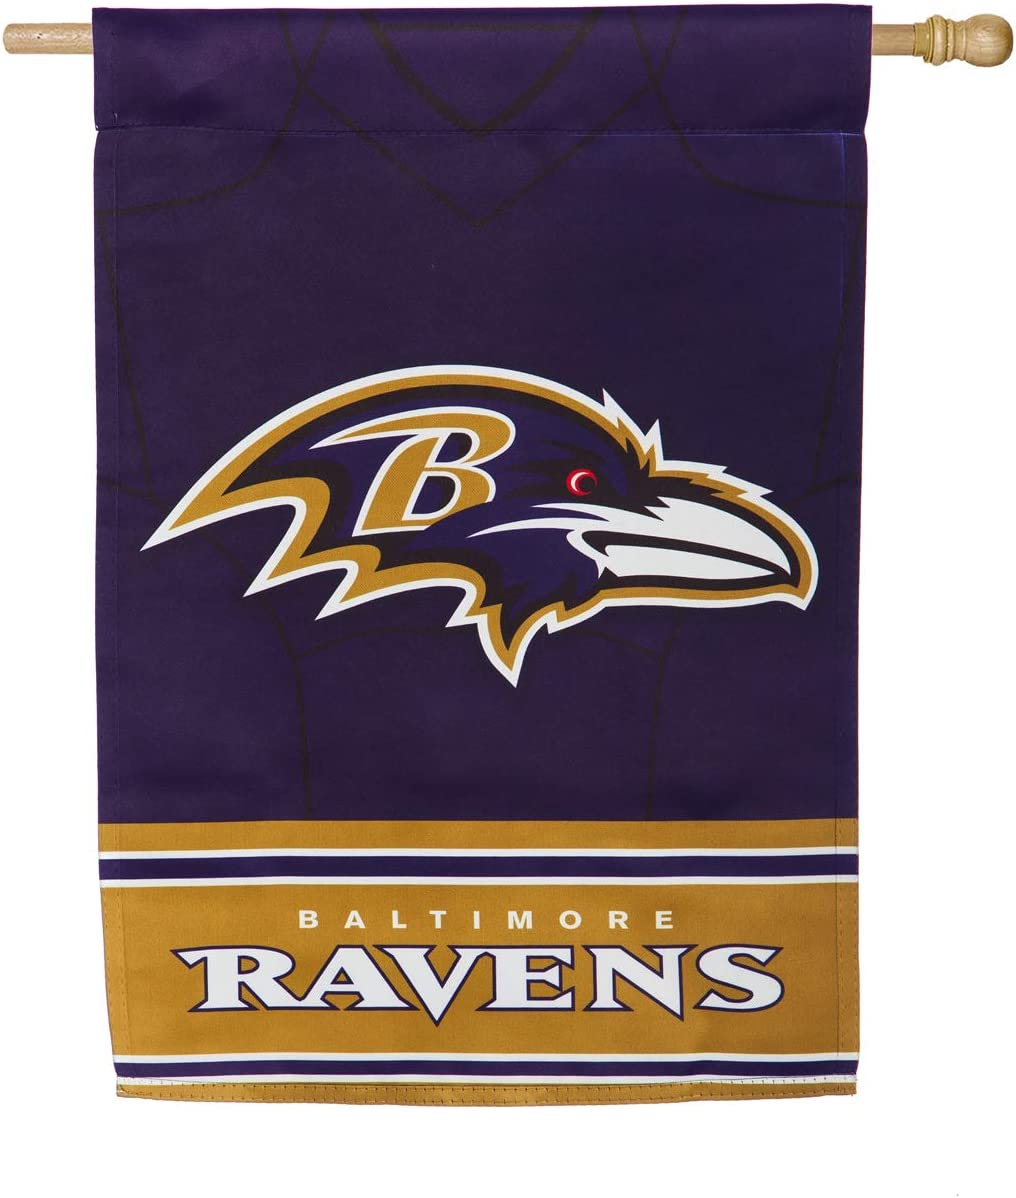 Team Sports America Double Sided Jersey Flag for Ravens Fans! Officially Licensed Baltimore Ravens Weather and Fade Resistant Outdoor Flag 43 x 29 Inches